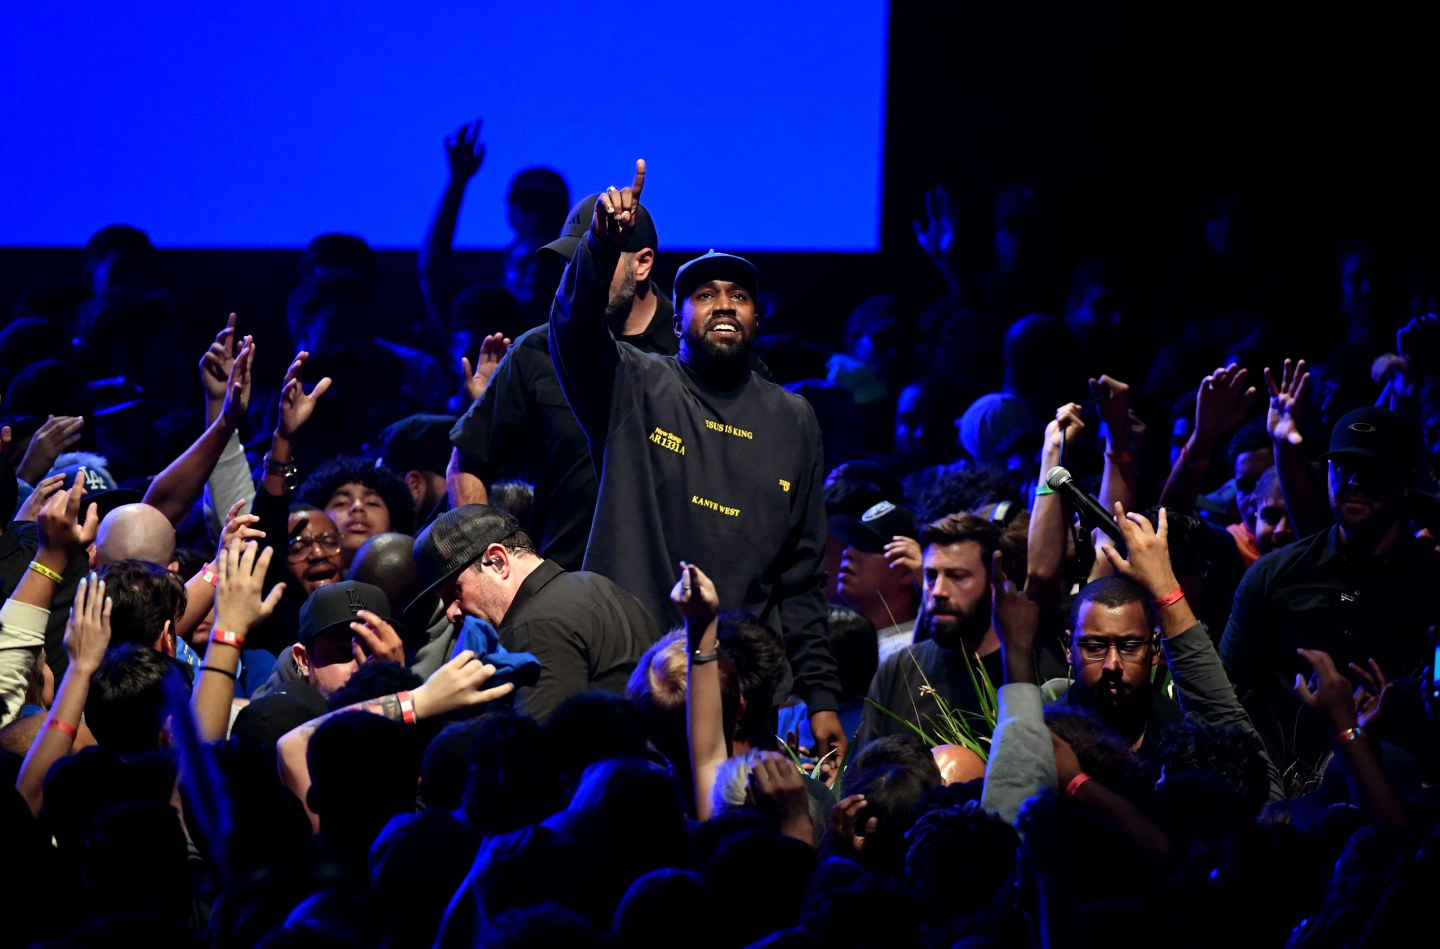 The shortcomings of Kanye West and <i>Jesus Is King</i>